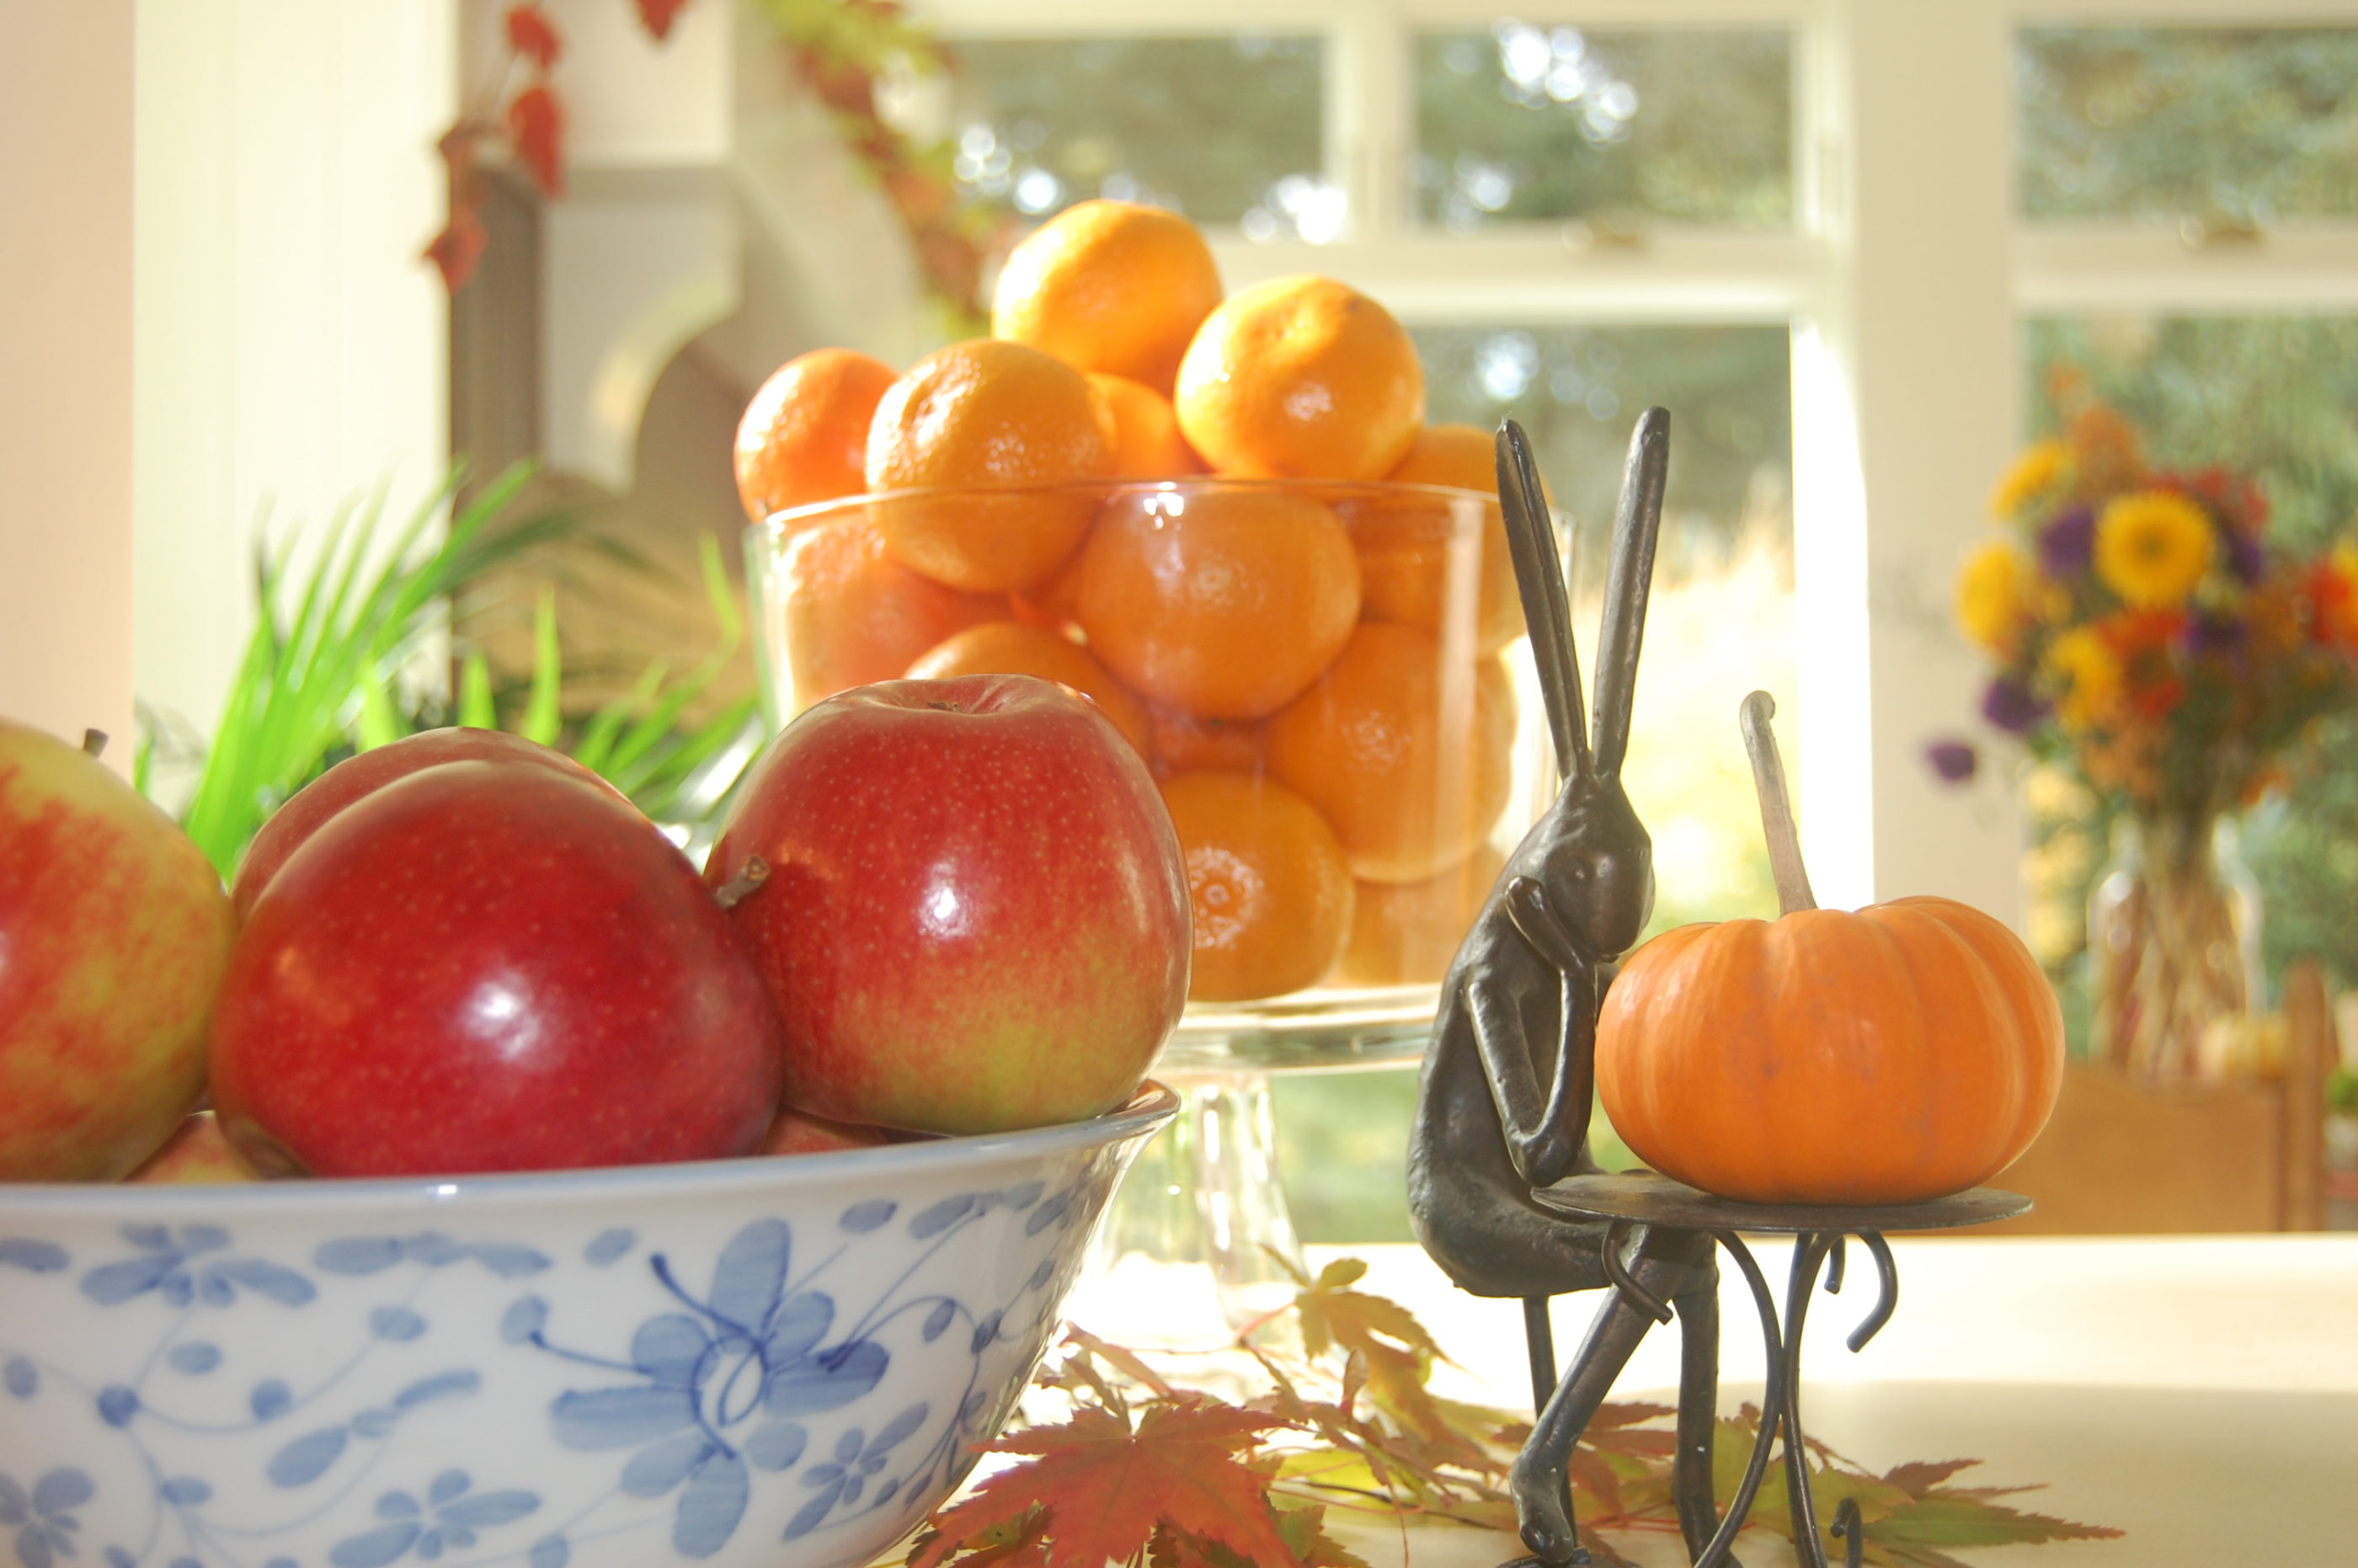 Fall Decorations With Pumpkins, Fruit and Wrought-Iron Bunny